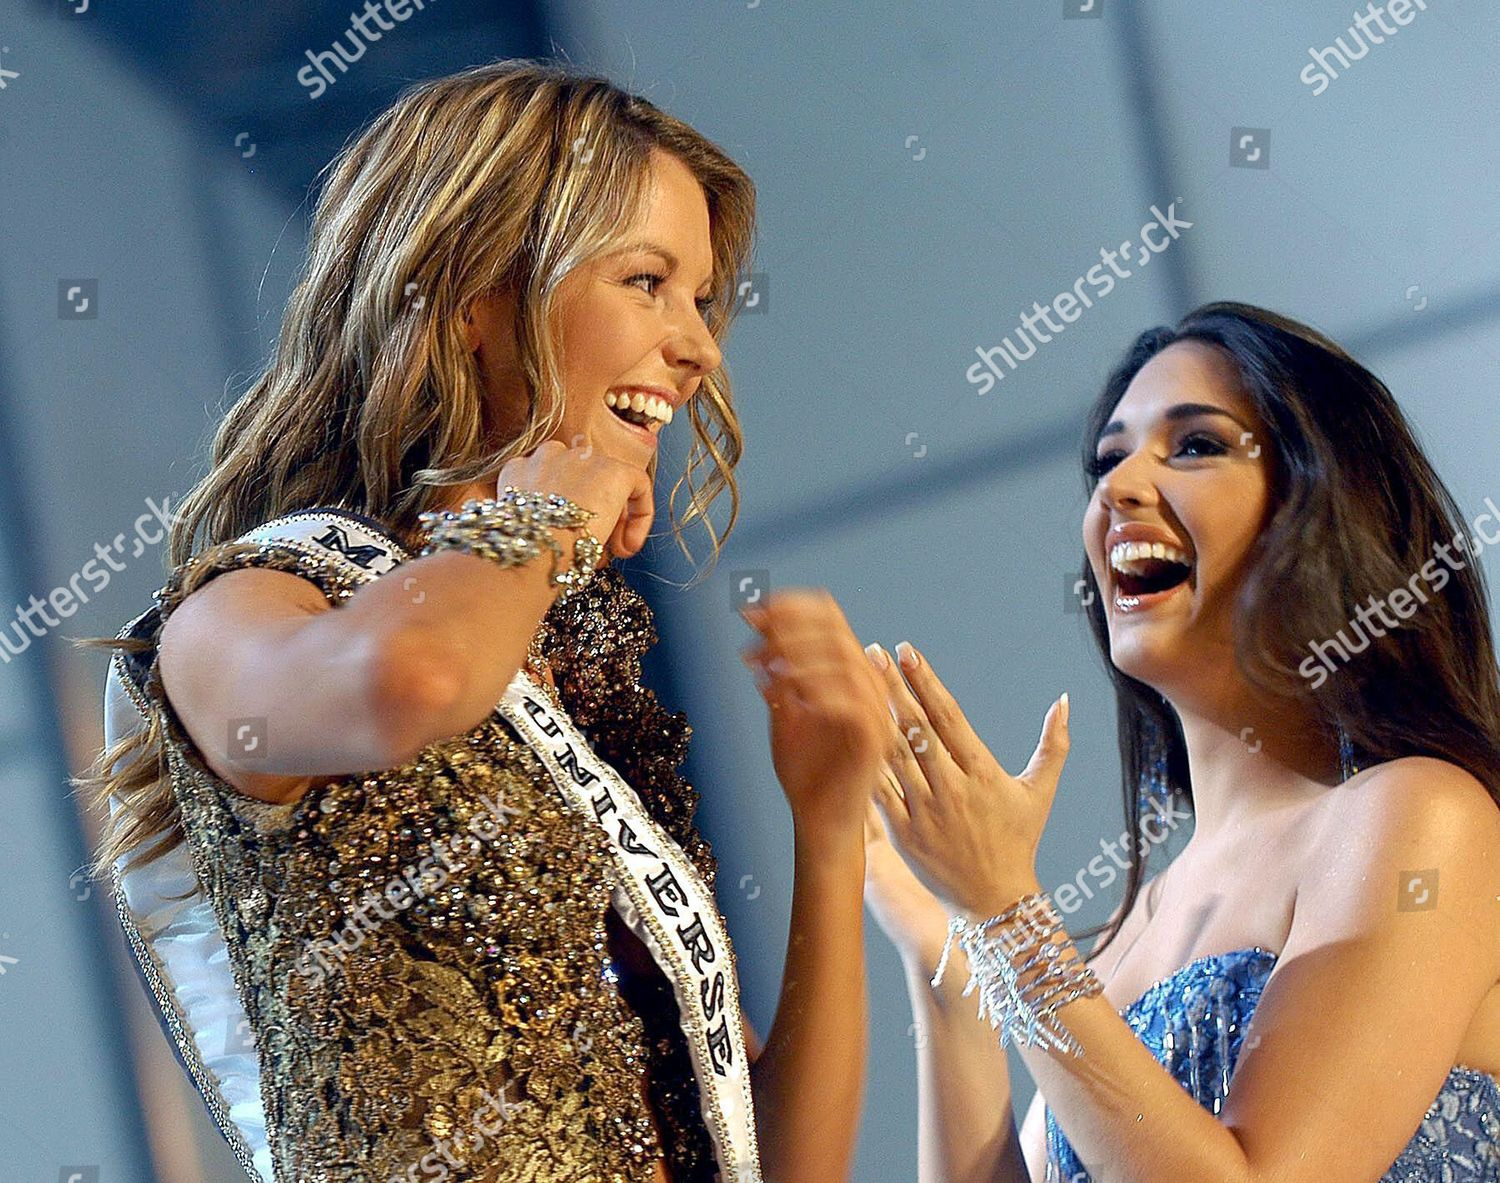 ecuador-miss-universe-contest-jun-2004-s